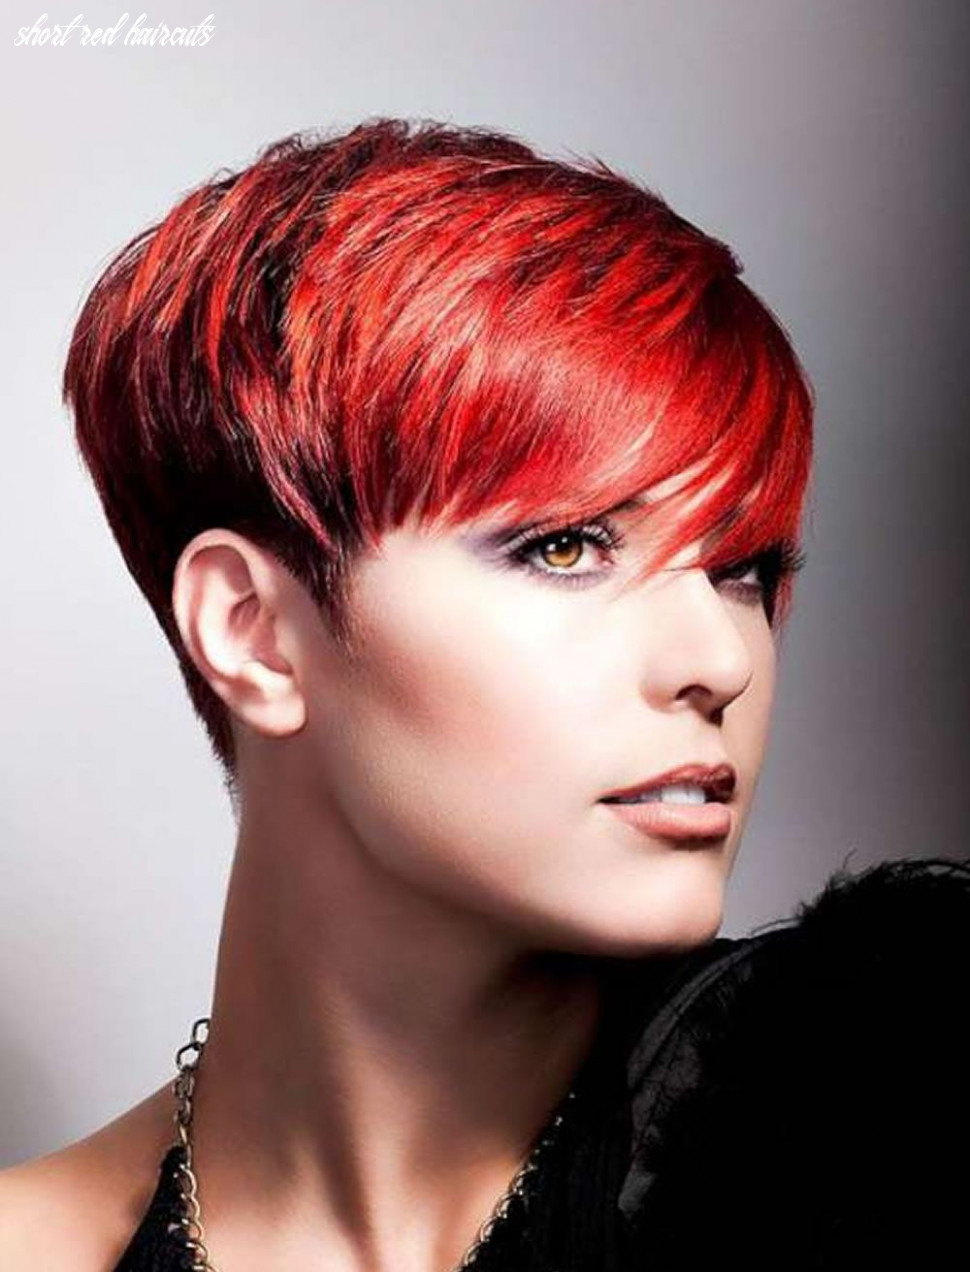 Pin on hairstyles short red haircuts